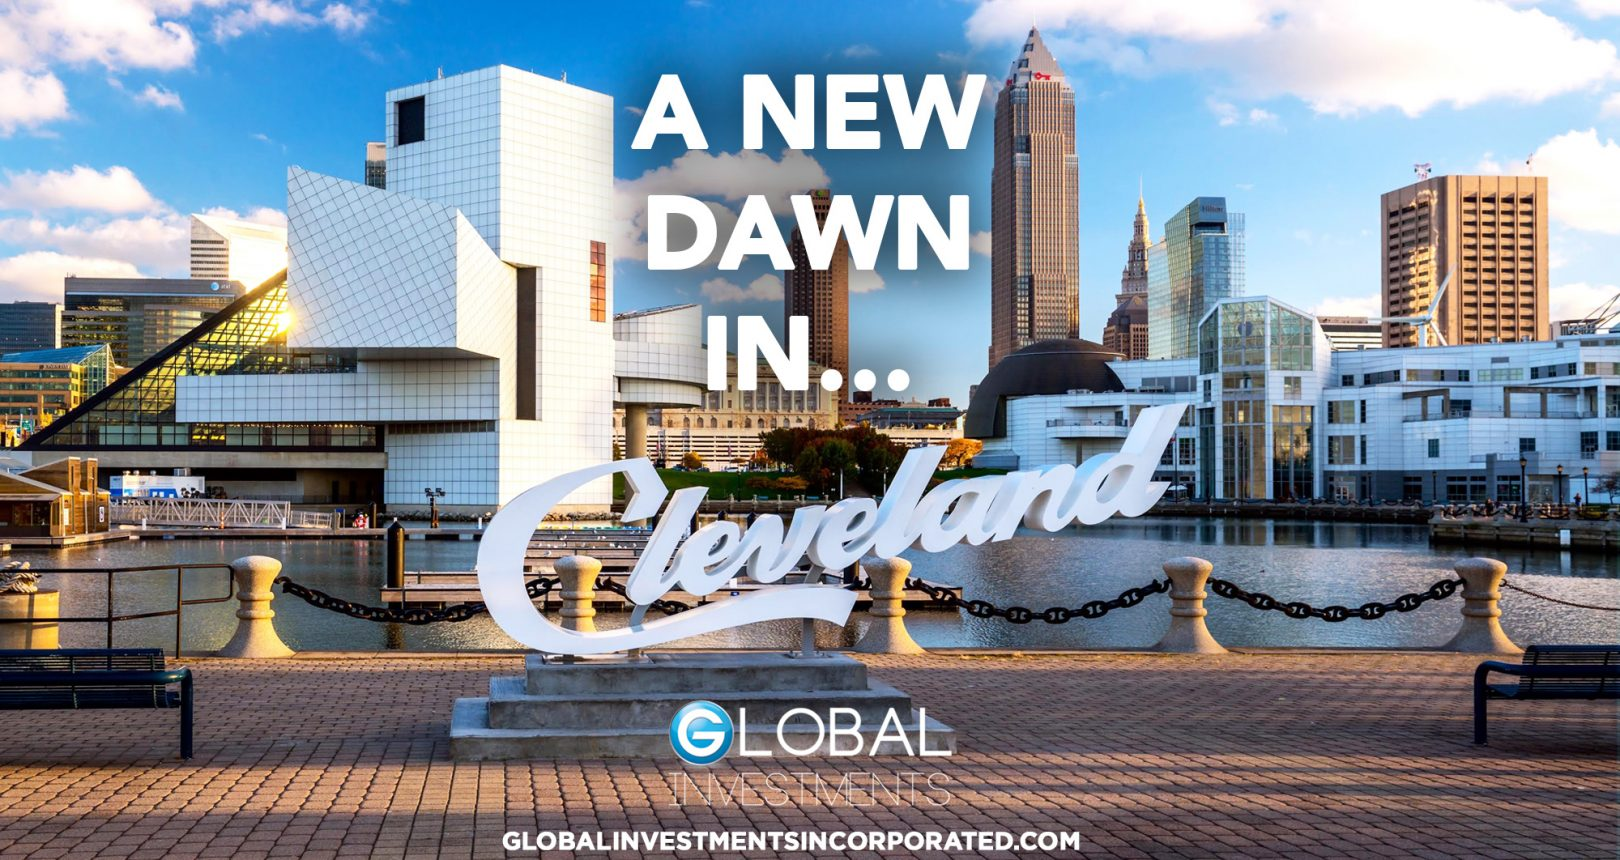 A NEW DAWN IN CLEVELAND OHIO